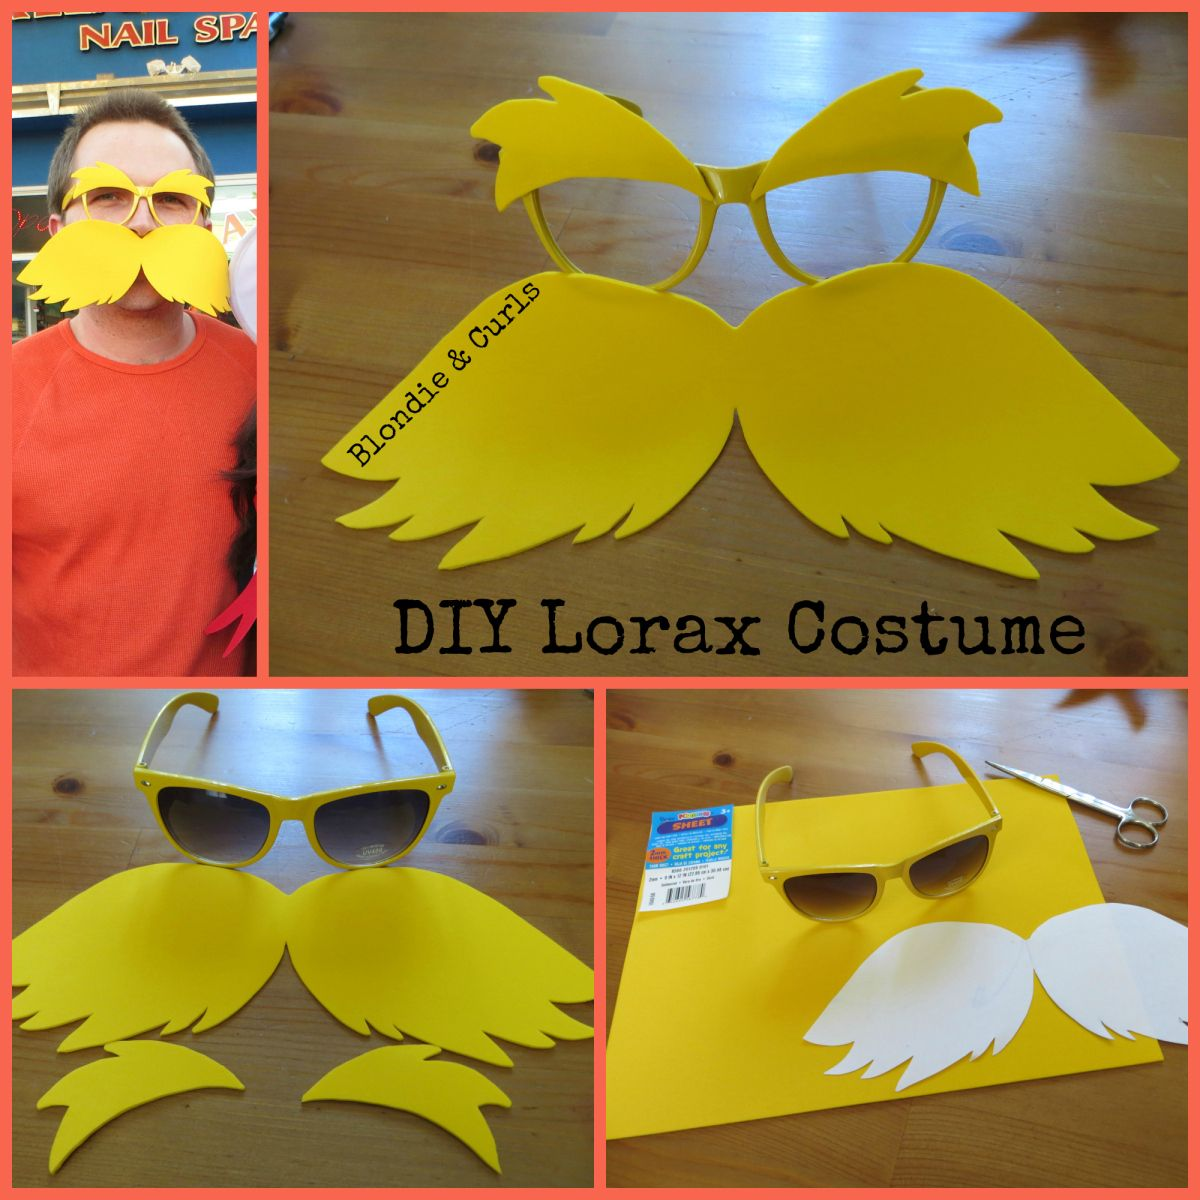 Diy lorax costume pinterest diy costumes lorax and costumes our family went with a dr seuss theme for halloween this year my husbands pick was the lorax and my job was to come up with a diy costume for him solutioingenieria Choice Image